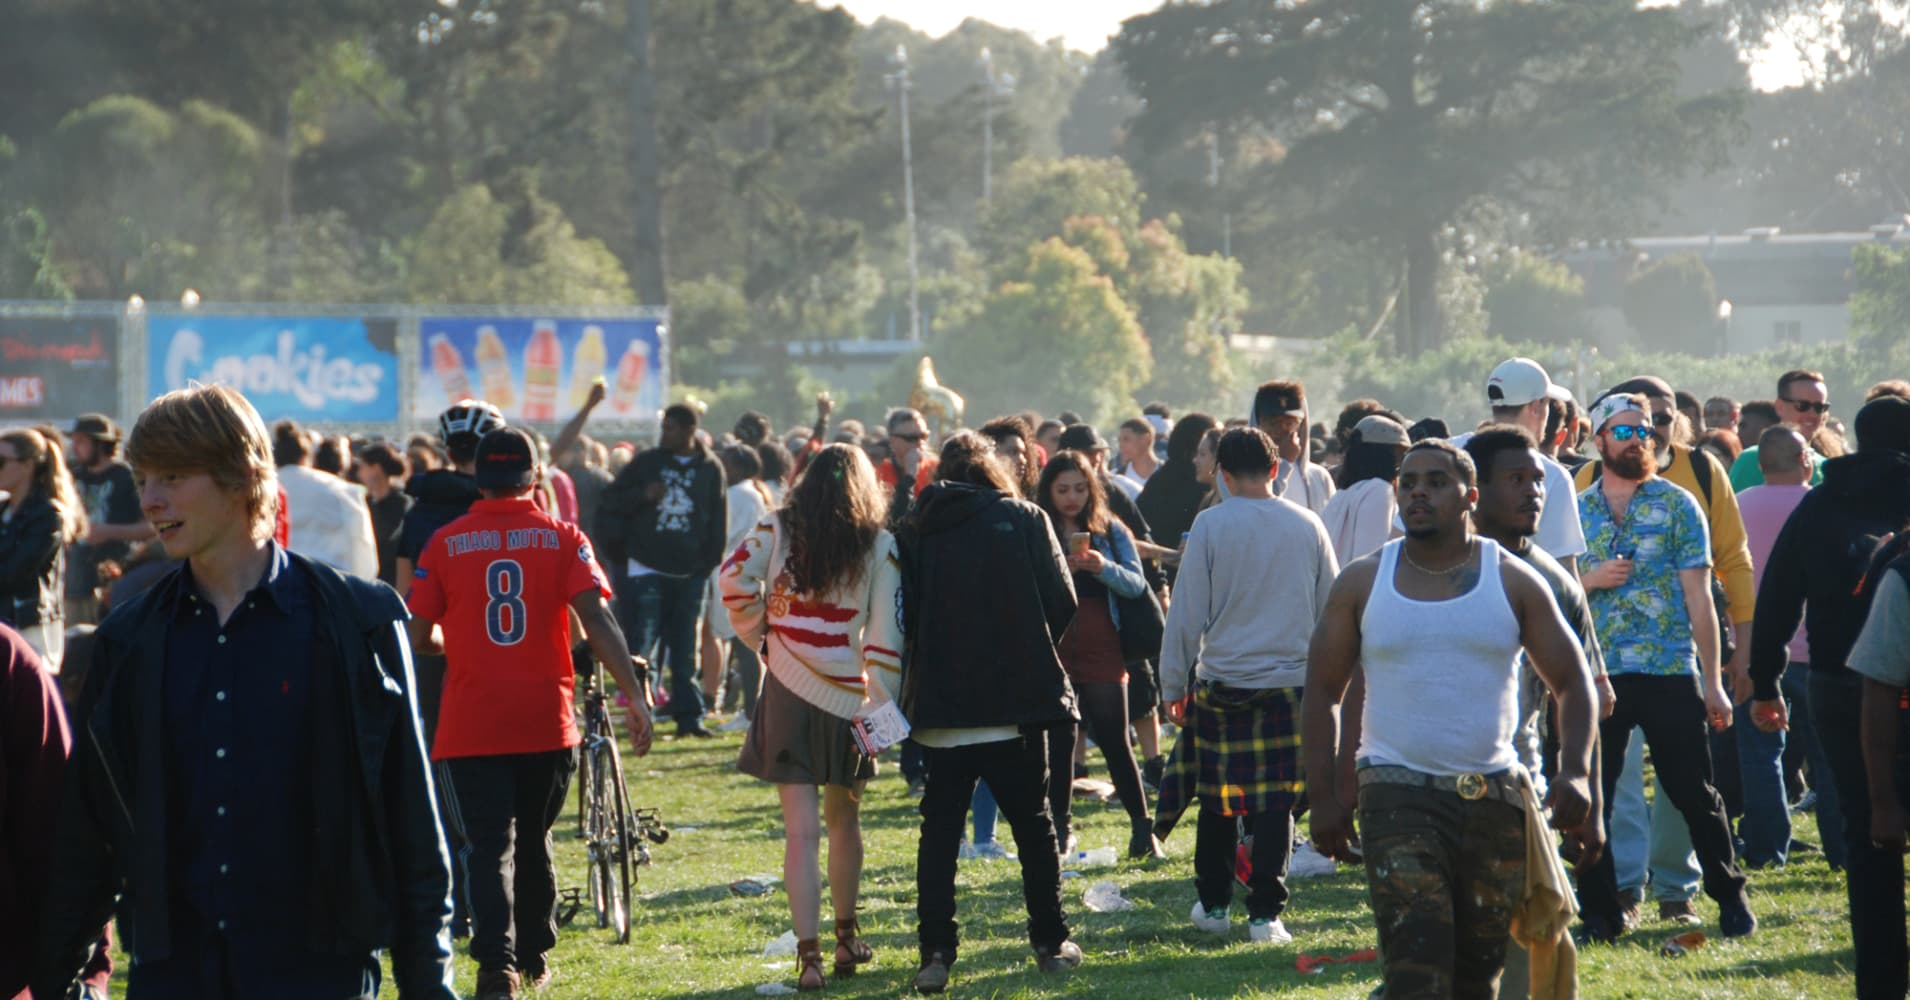 4/20 Celebration on Hippie Hill in San Francisco.